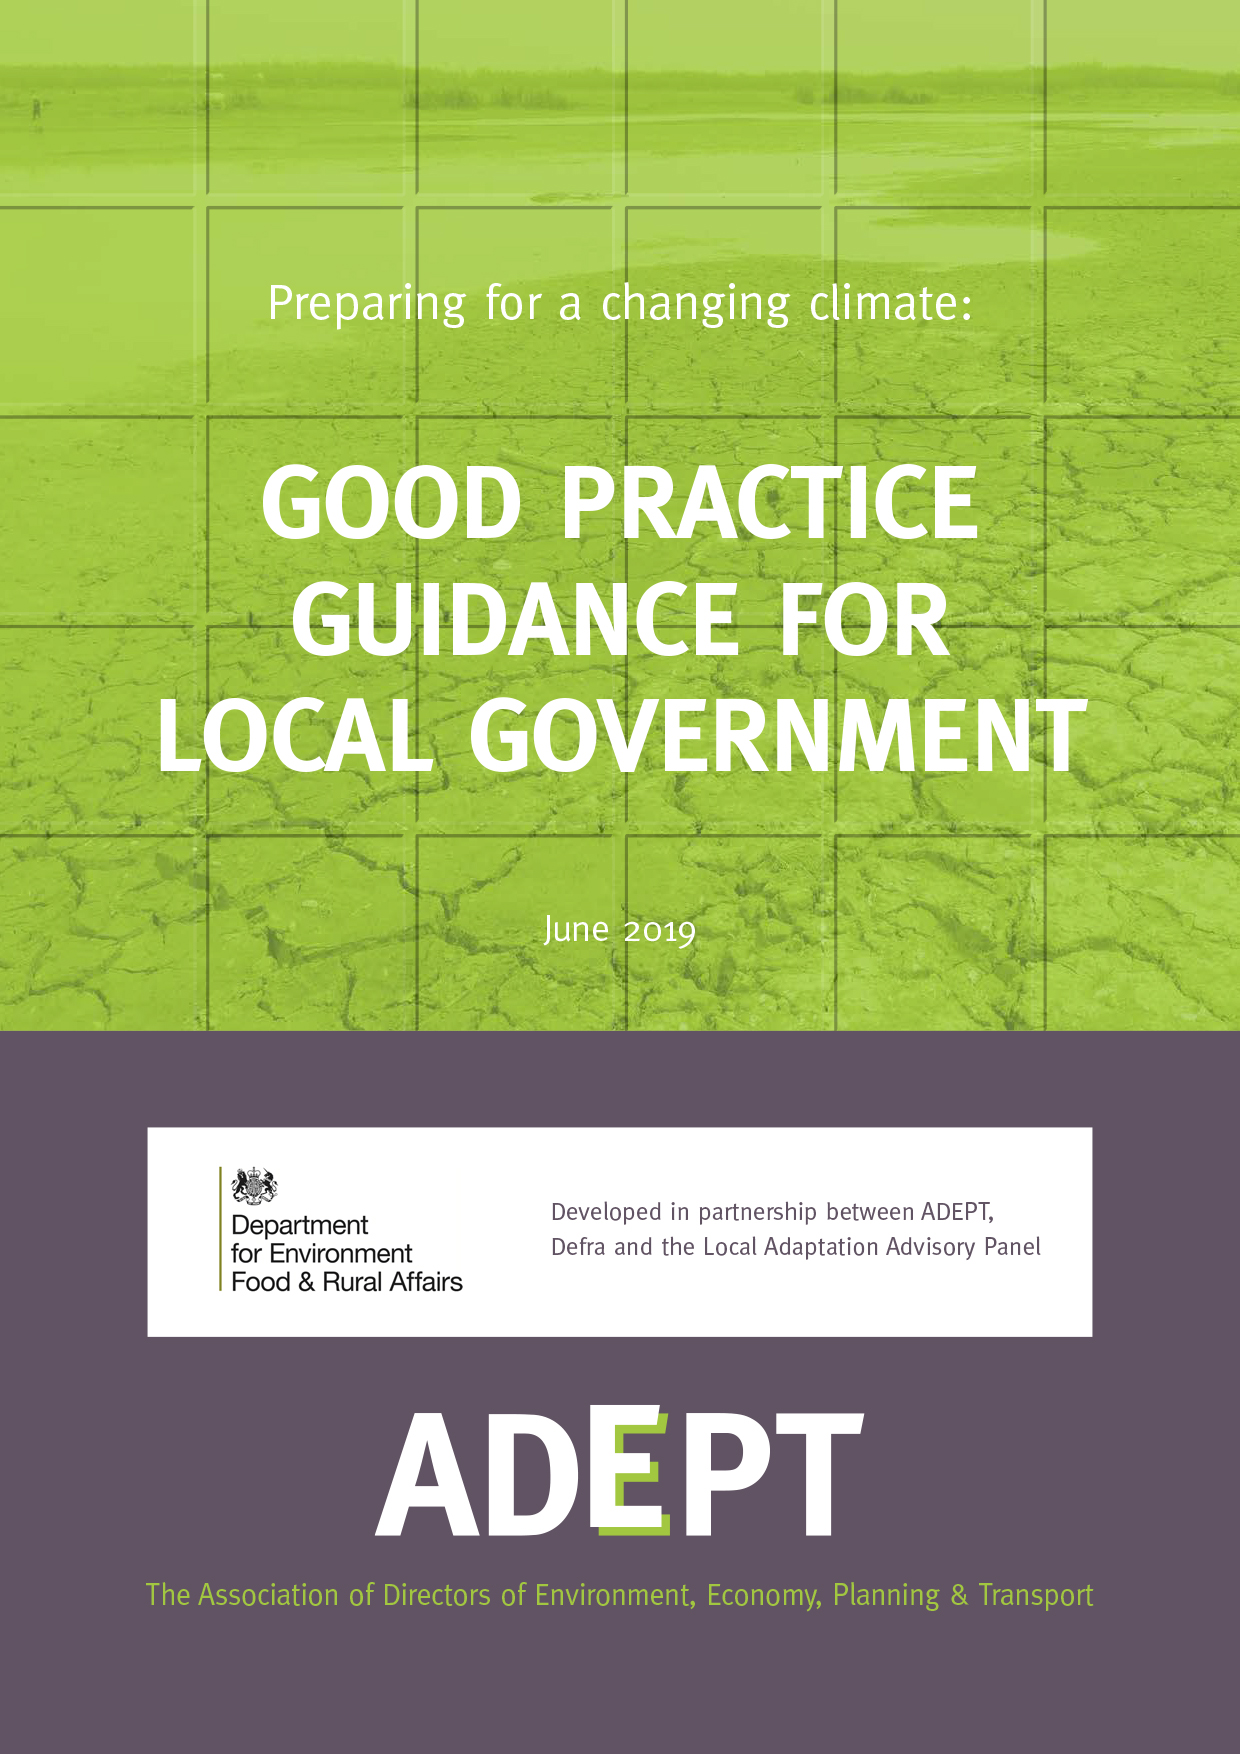 Good Practice Guidance for Local Government